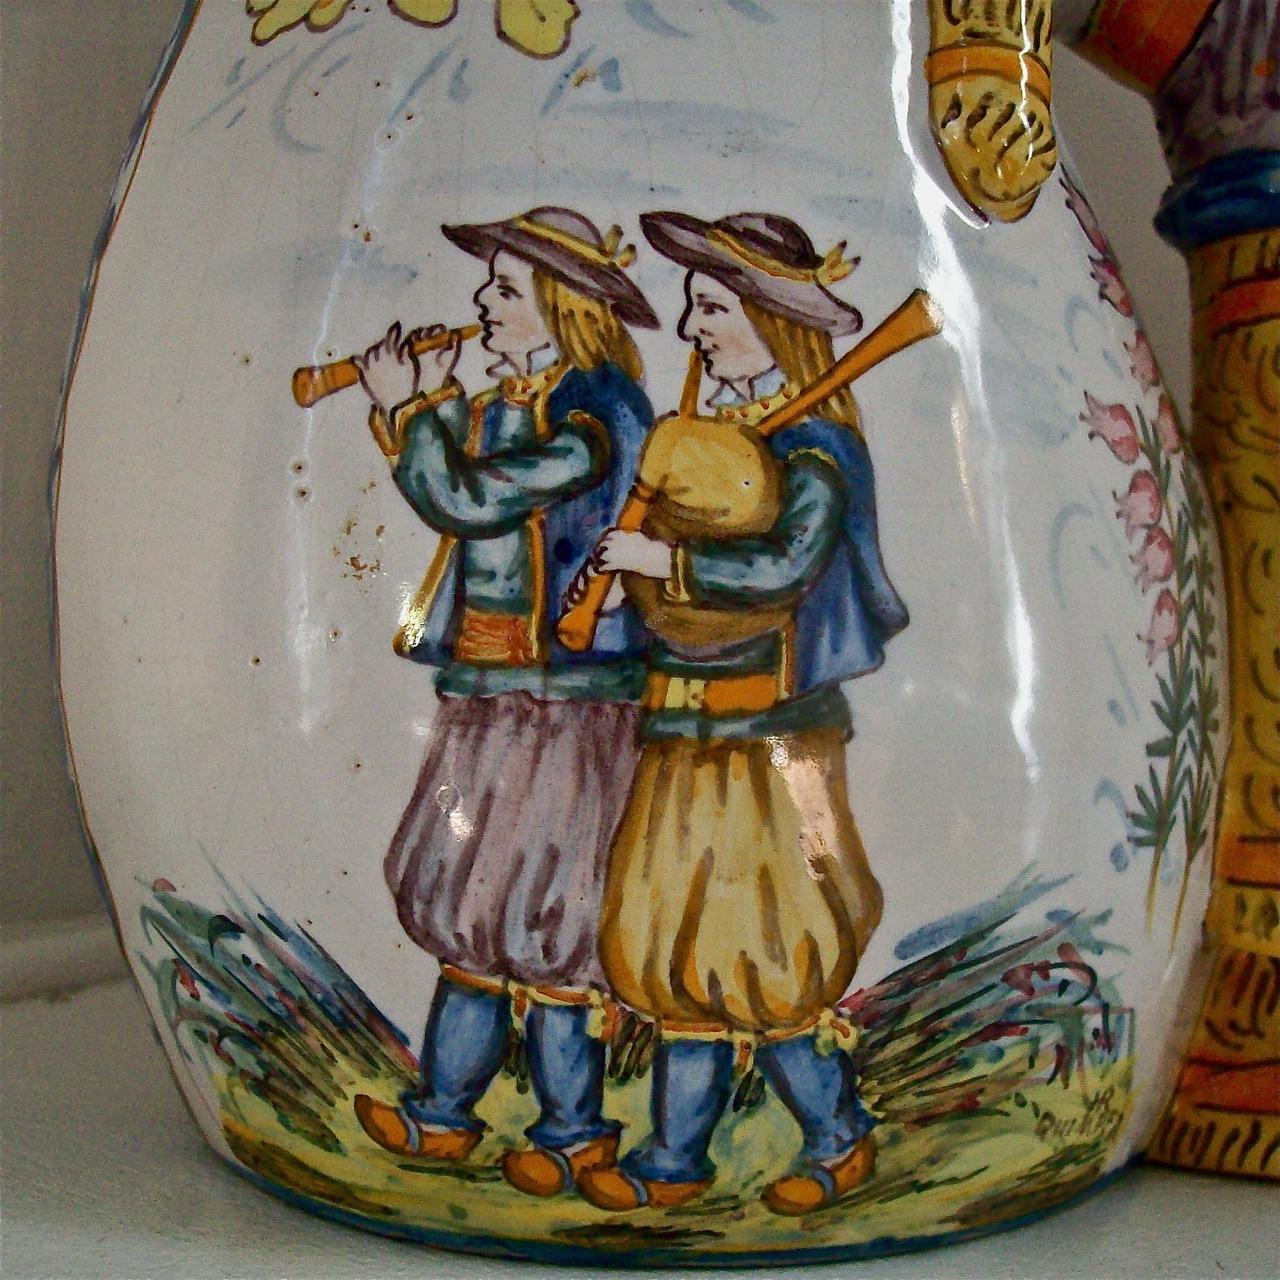 HENRIOT QUIMPER c1910 signed bagpipe vase antique French faience from musesantiques on Ruby Lane